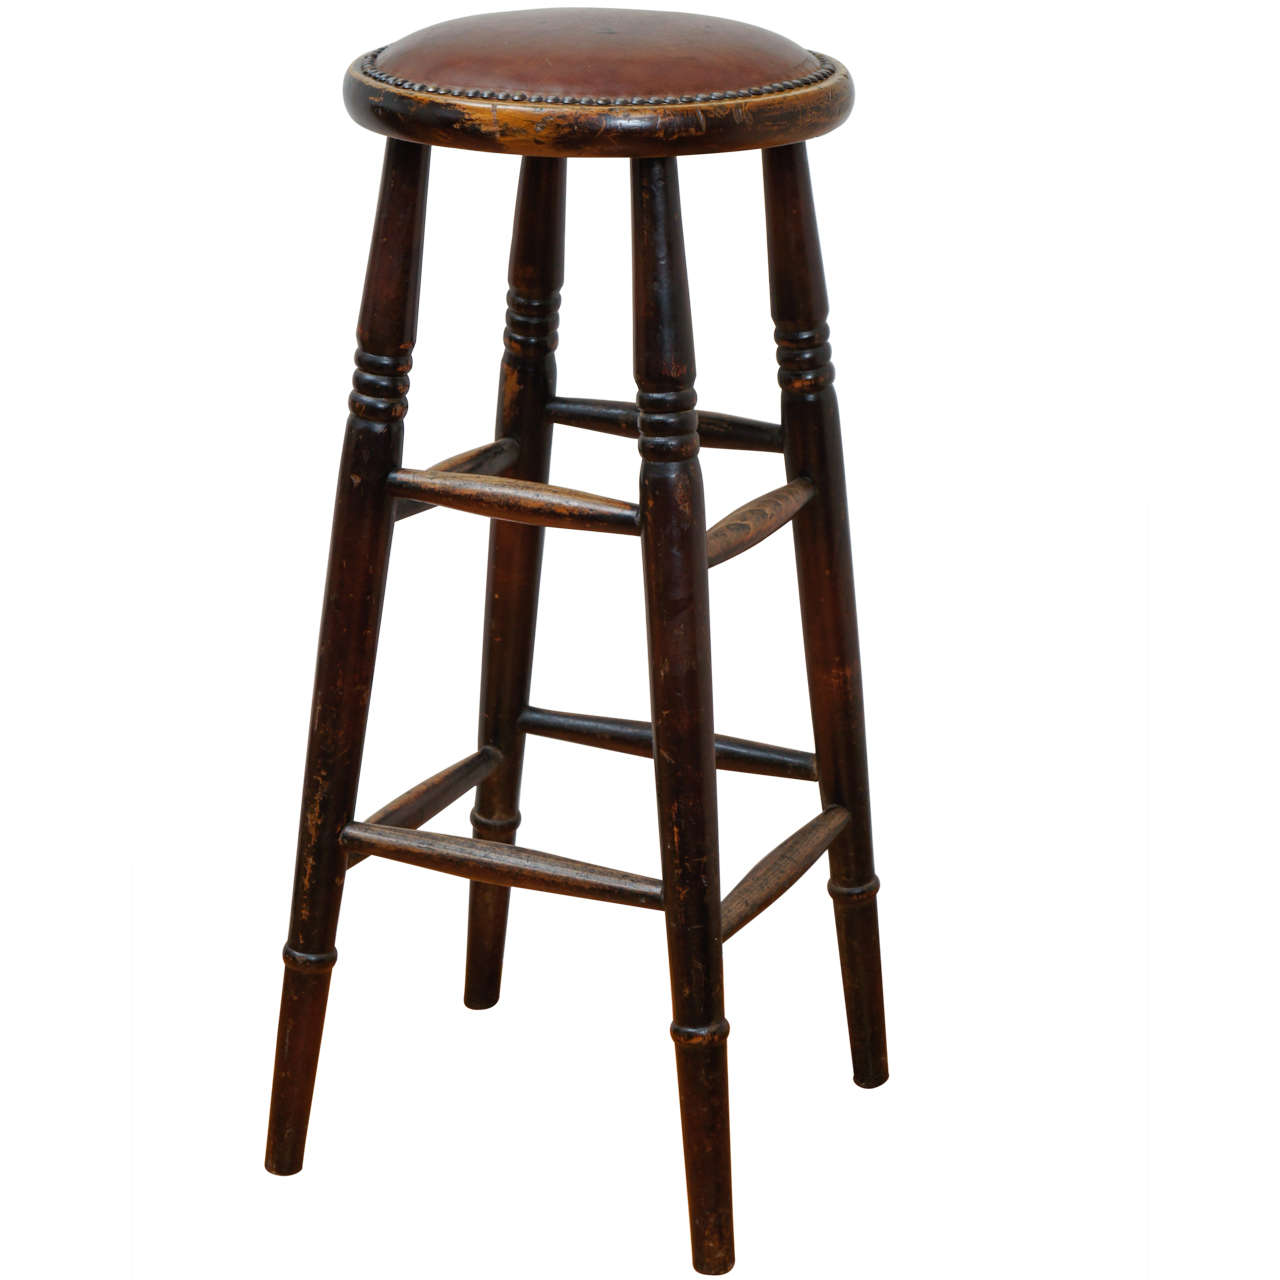 Unique English Leather Seat Pub Stool At 1stdibs